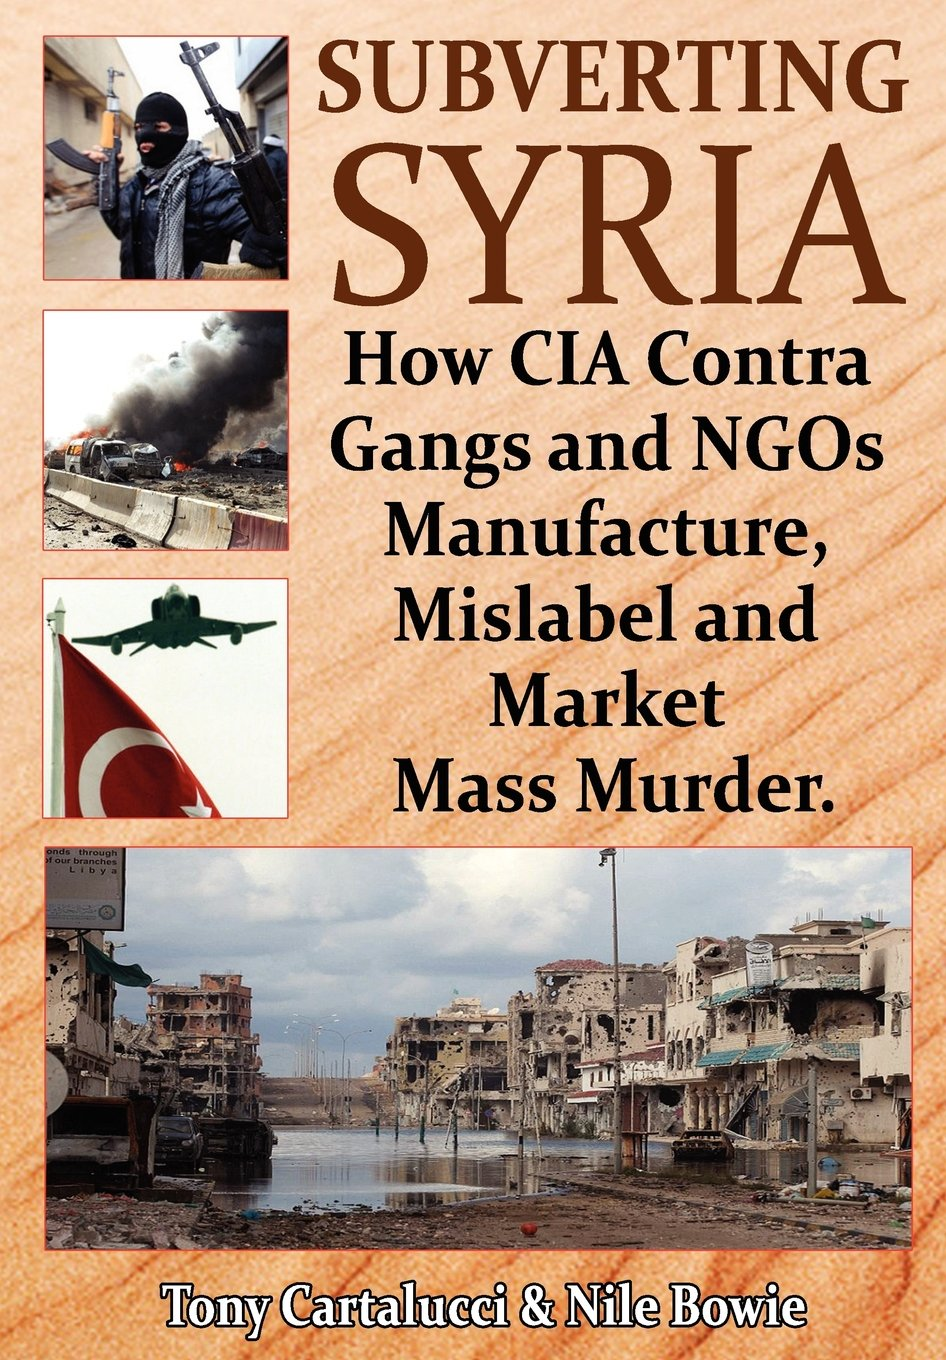 subverting-syria-how-cia-contra-gangs-and-ngo-s-manufacture-mislabel-and-market-mass-murder